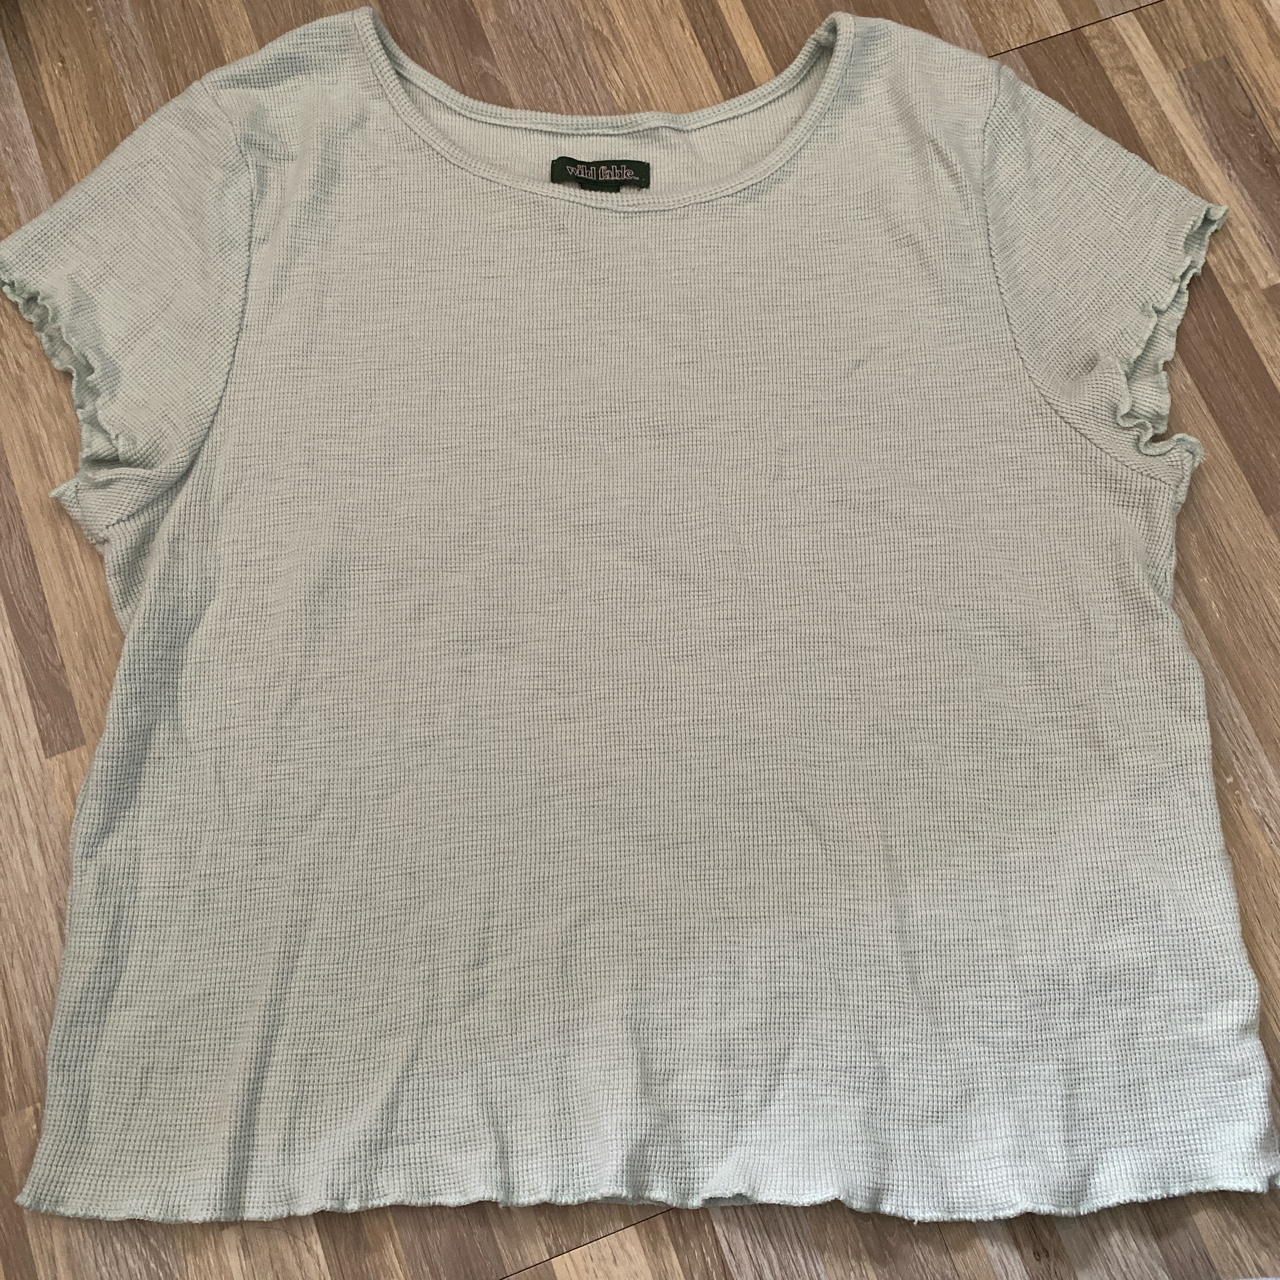 Product Image 1 - Teal Wild Fable T-shirt Size